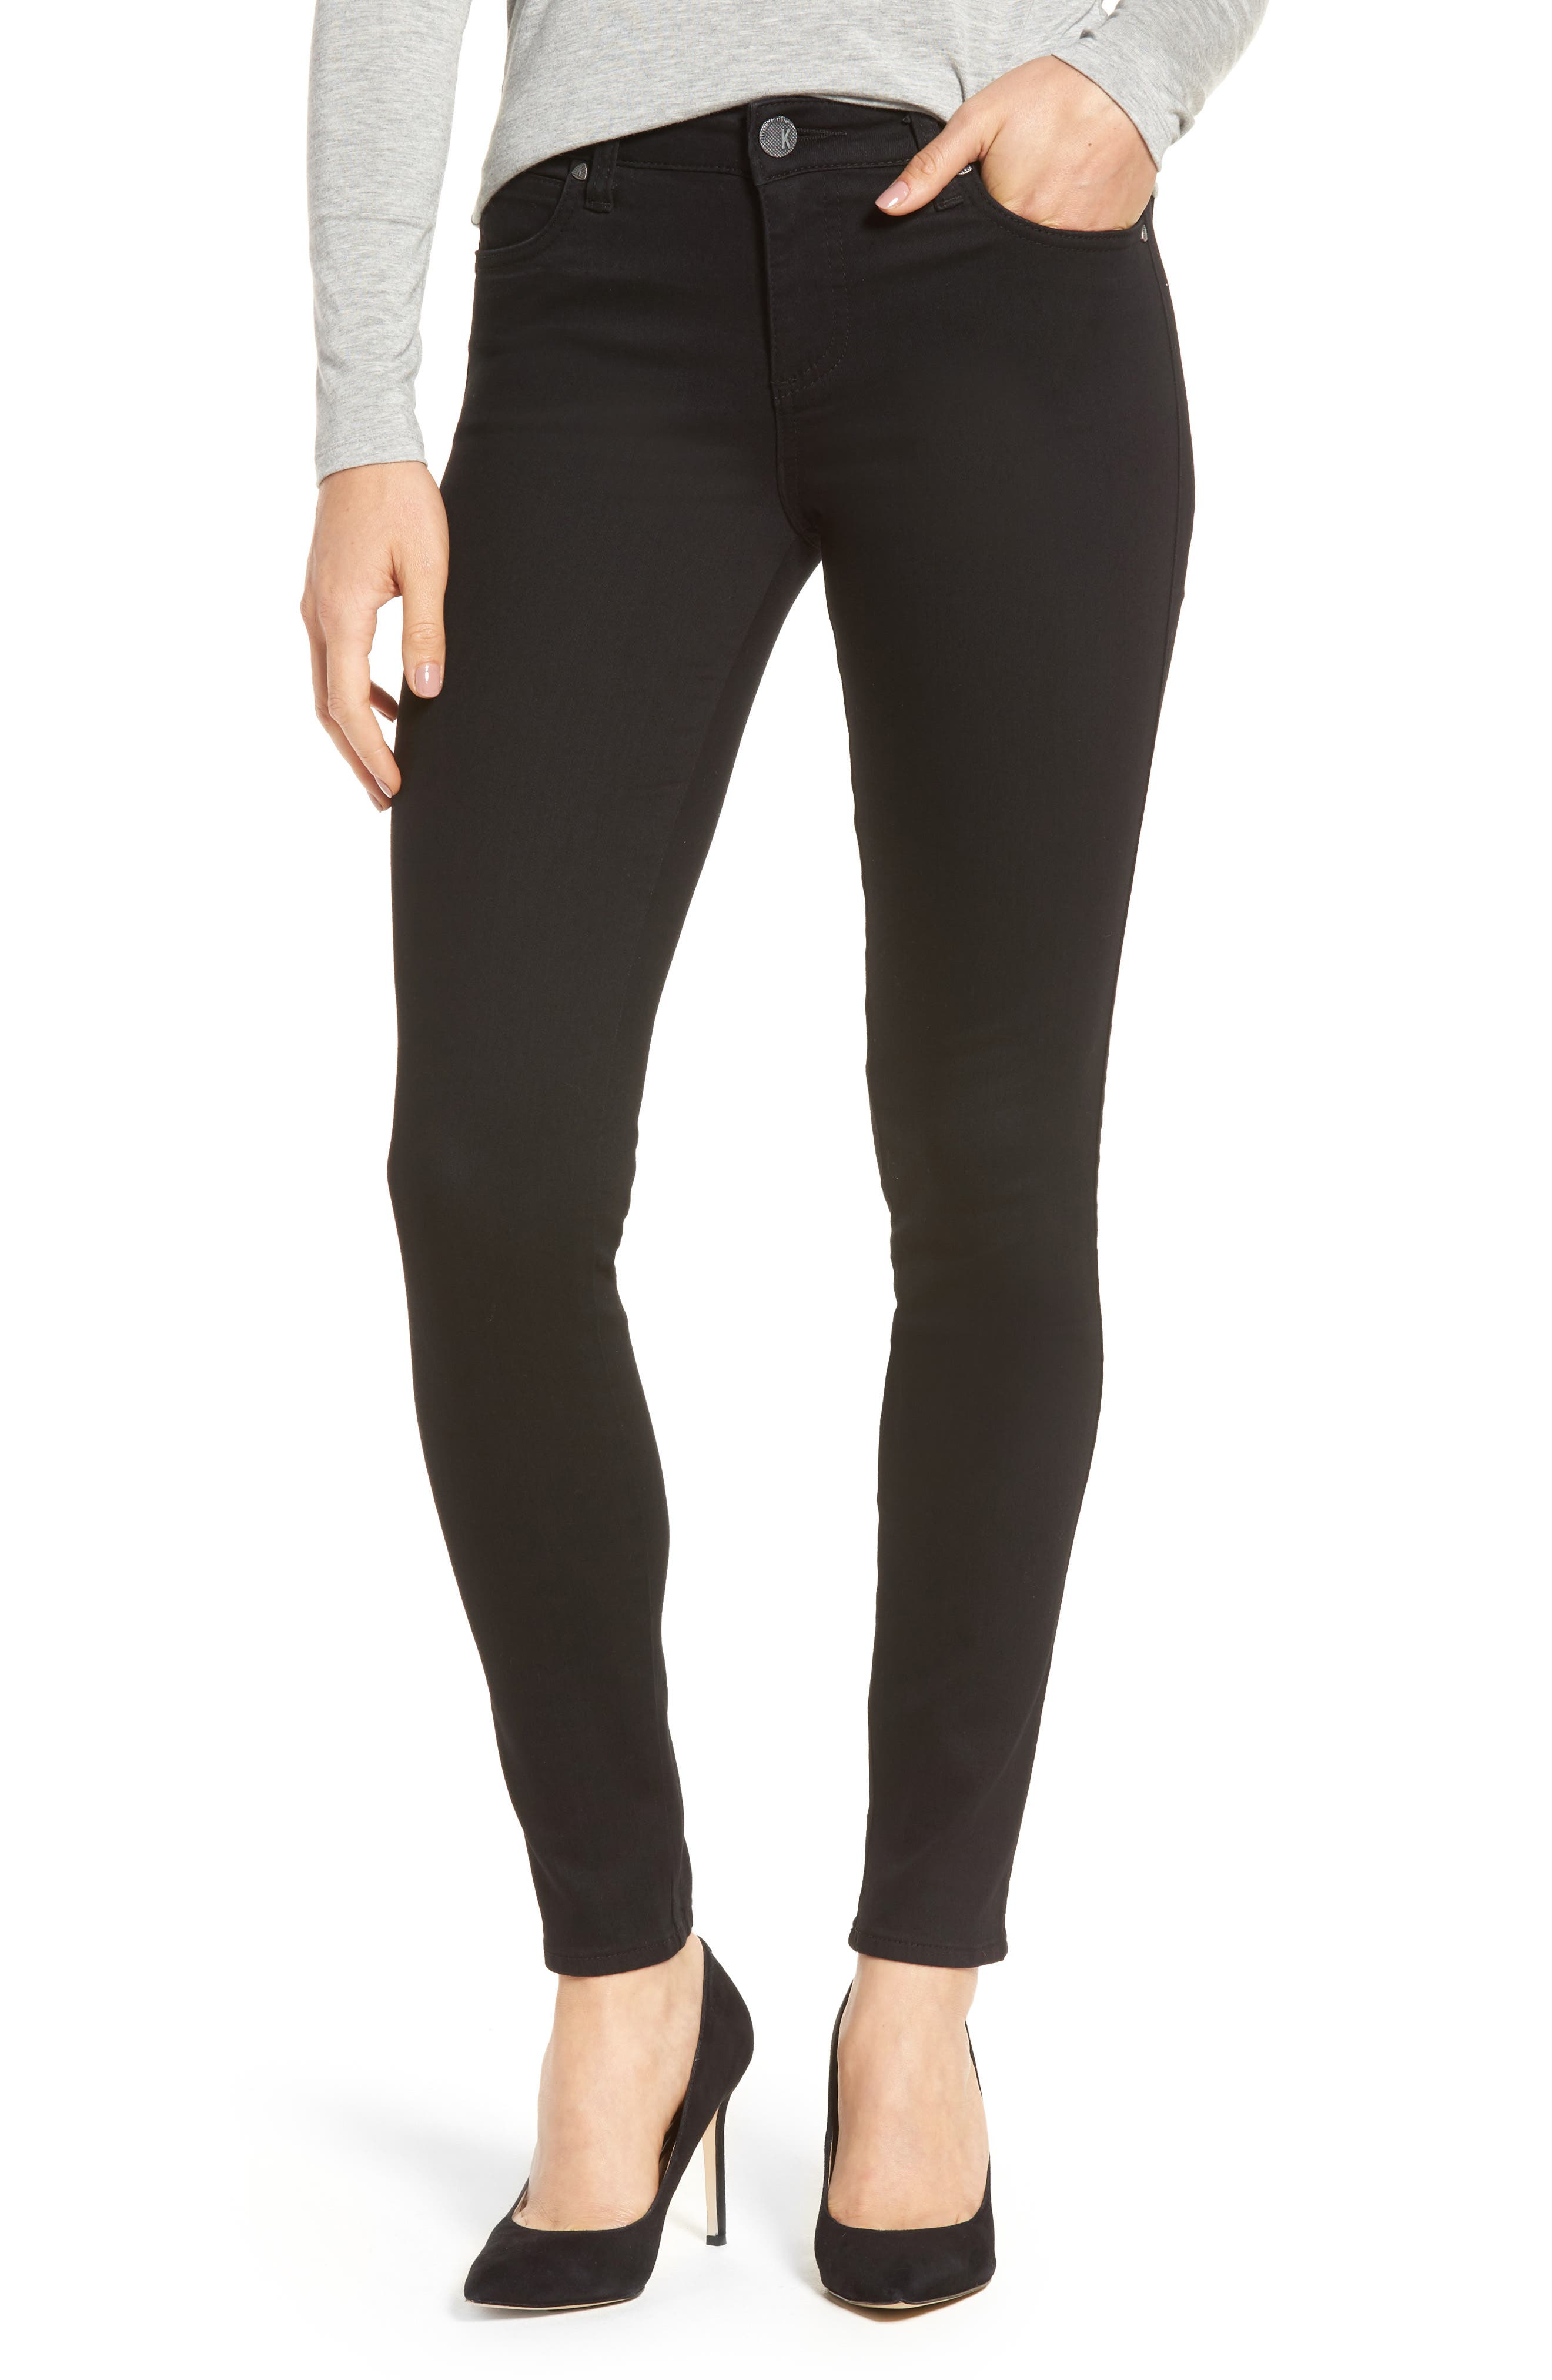 Diana Curvy Fit Skinny Jeans,                         Main,                         color, Black